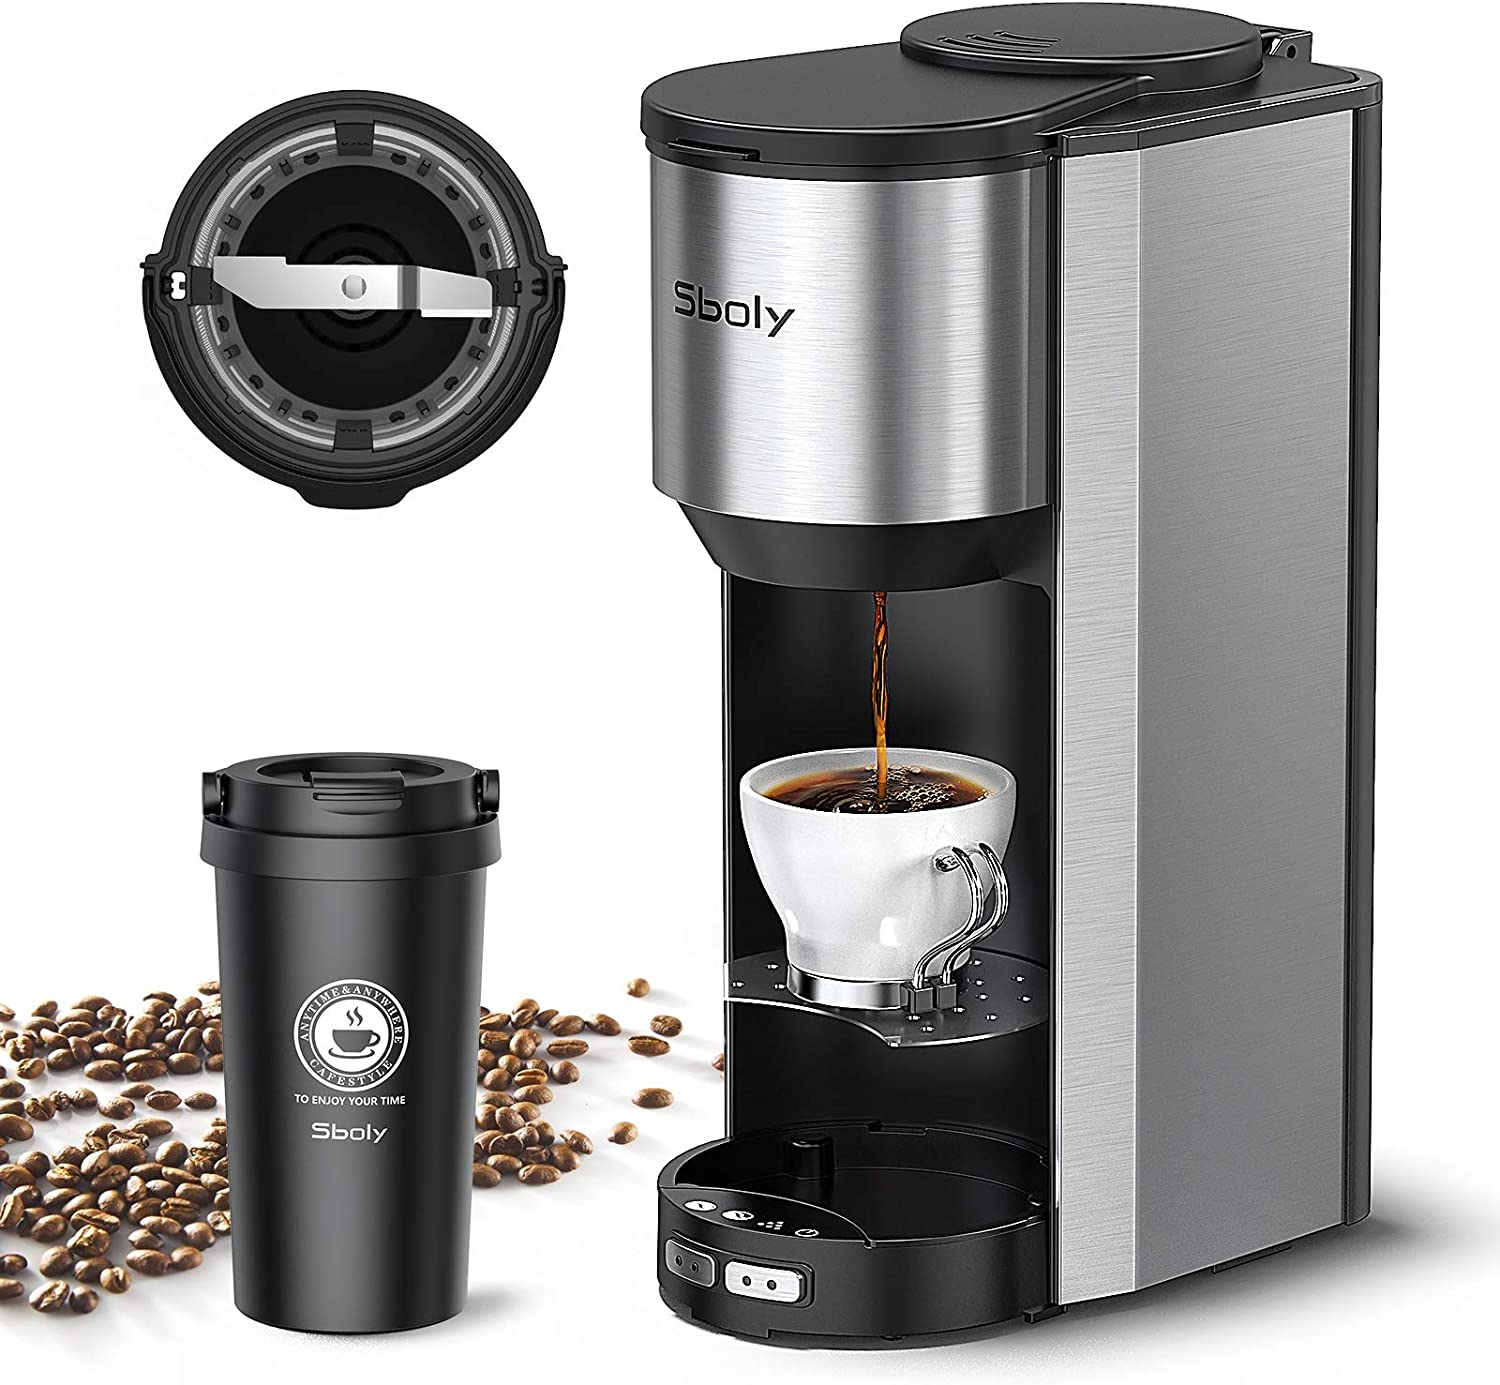 Sboly Coffee Machine Grind and Brew 2 In 1